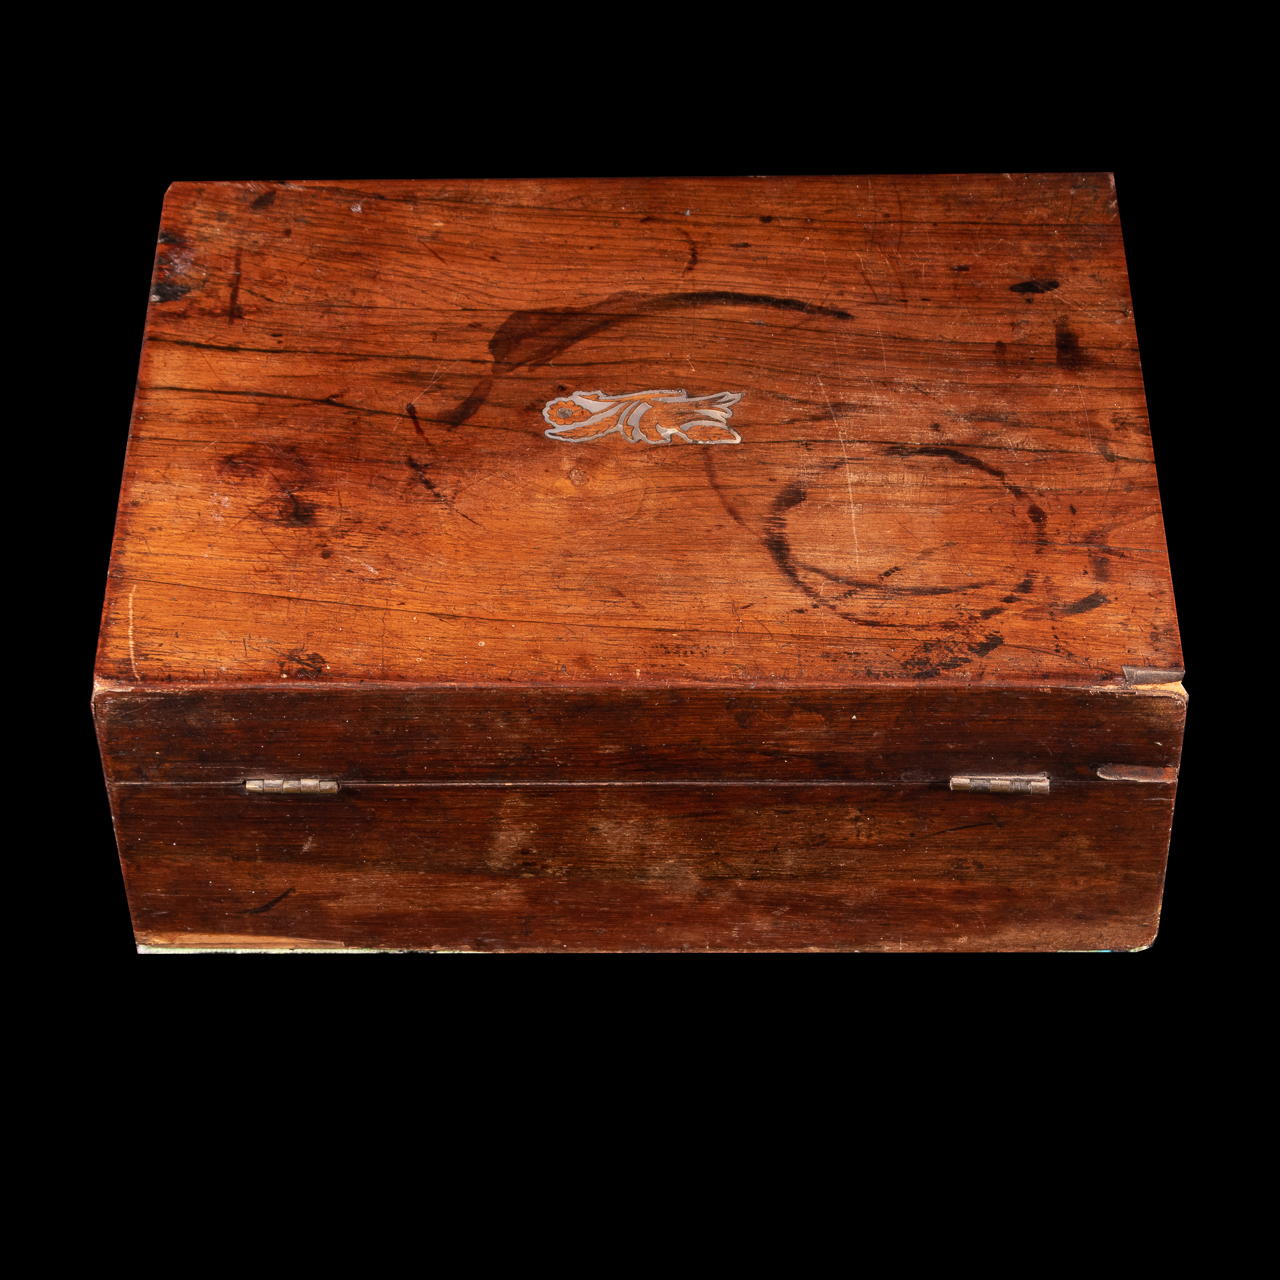 Jewellery Box with Mother of Pearl Inlay - Image 3 of 5